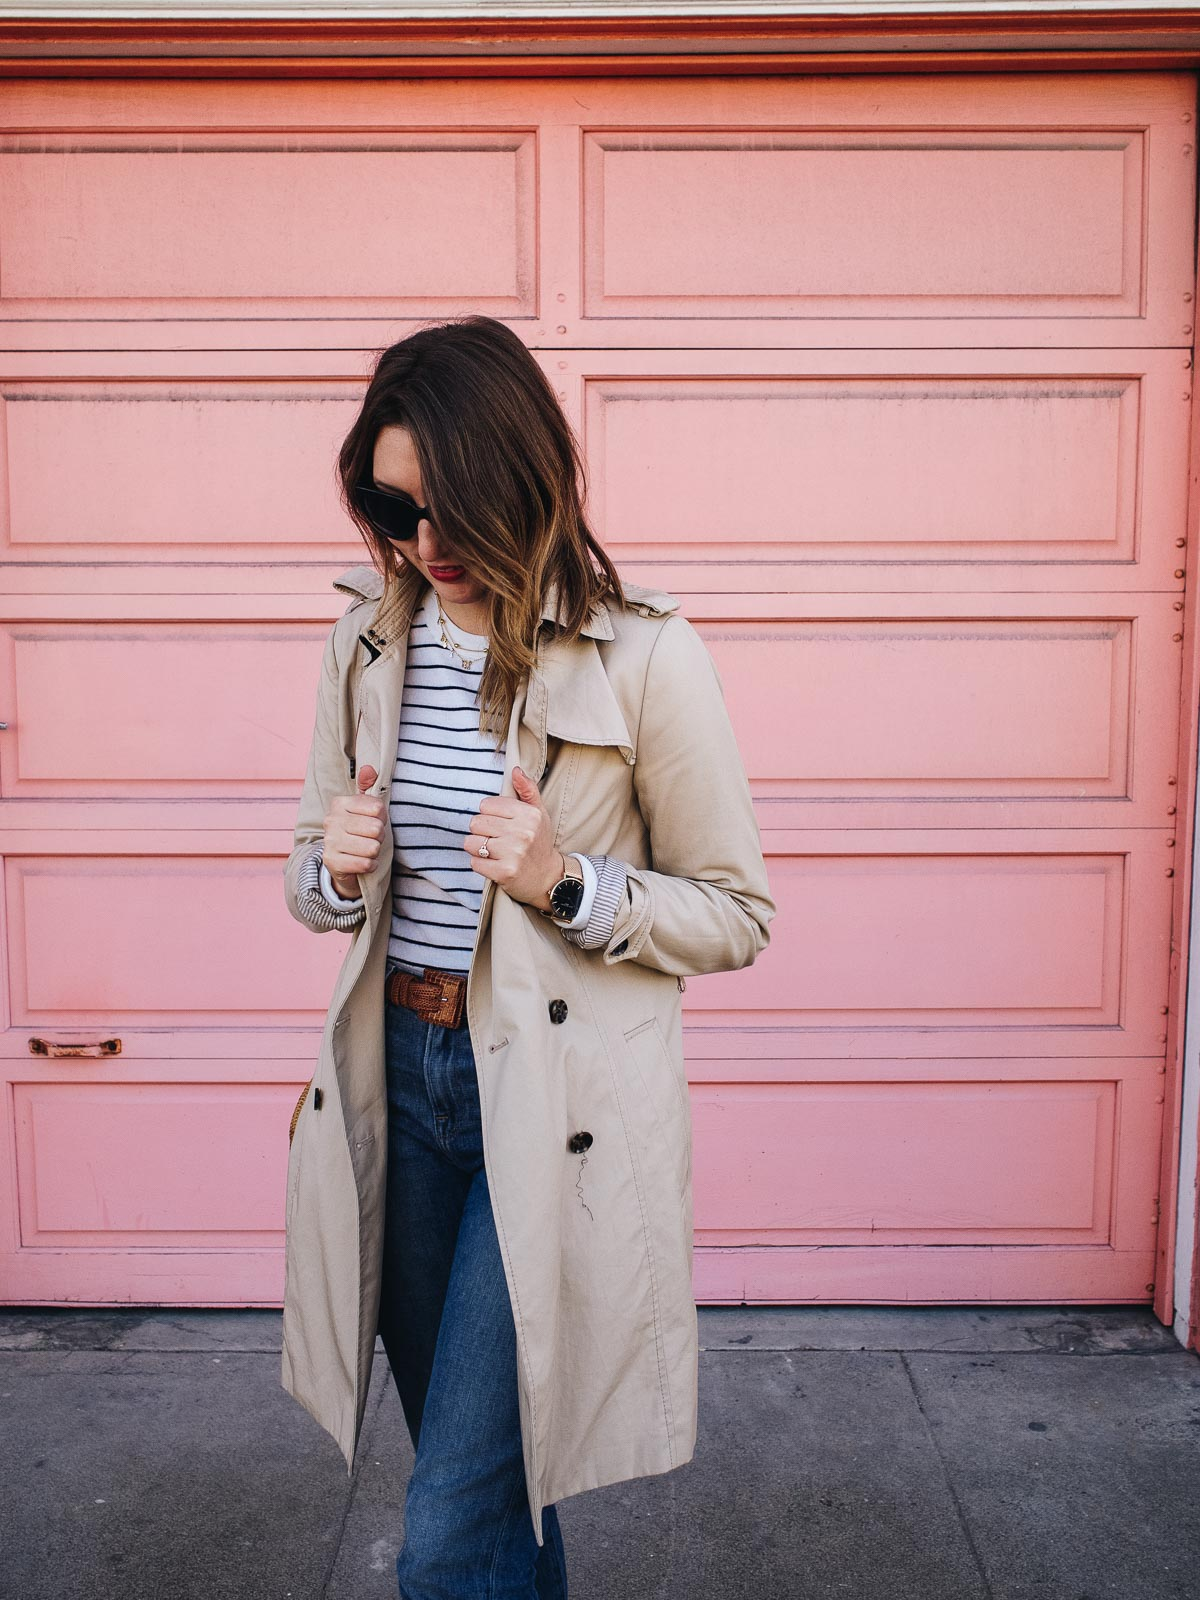 Dressing for Paris in San Francisco | Featuring a Club Monaco striped top, Frame cropped jeans, a vintage brown belt, black J Crew flats, Wood/Grey basket bag, Neubau black sunglasses and a Banana Republic classic trench | Wolf & Stag